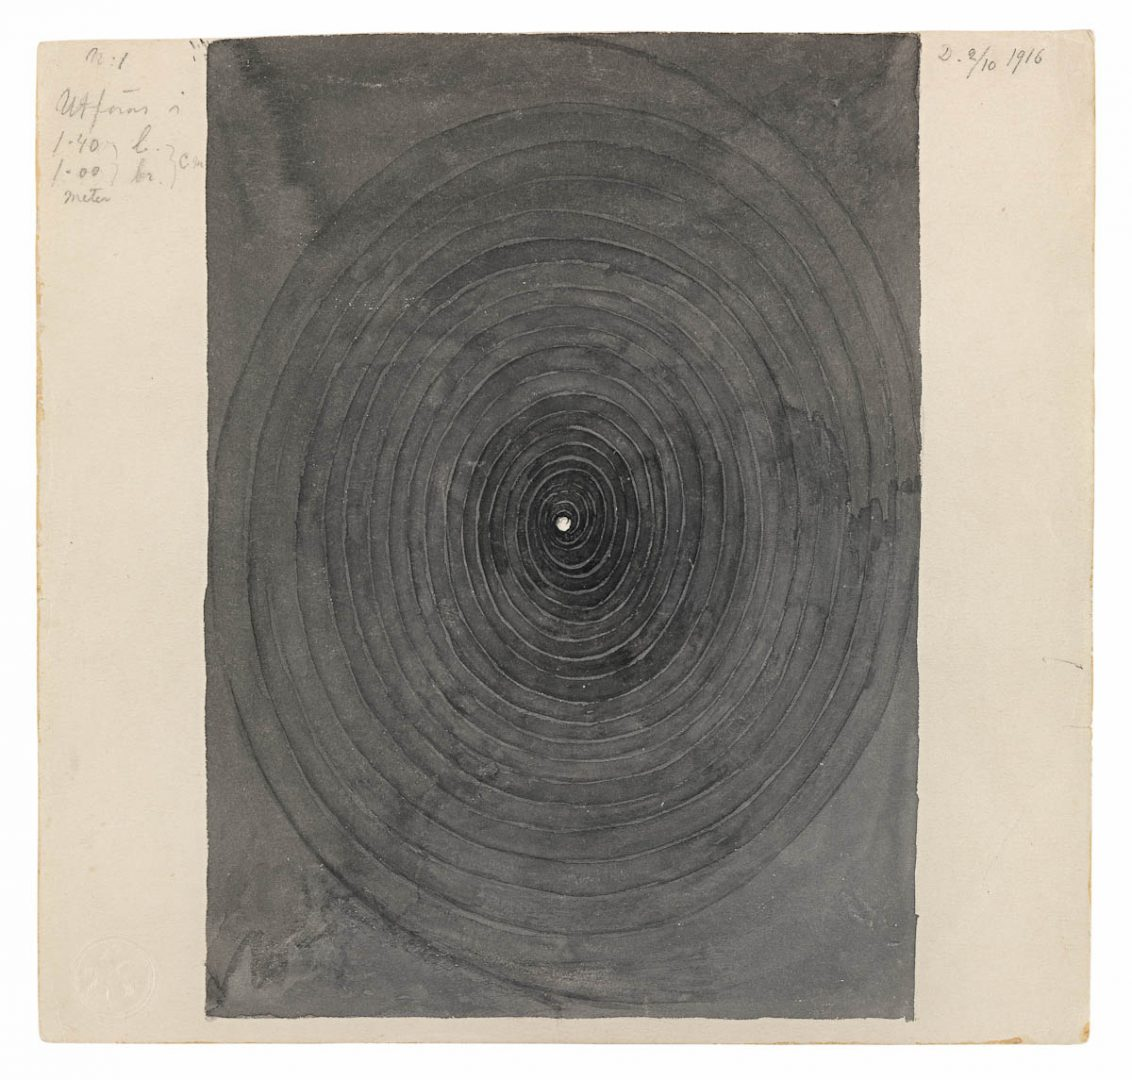 HILMA AF KLINT: Beyond the Visible #2 3